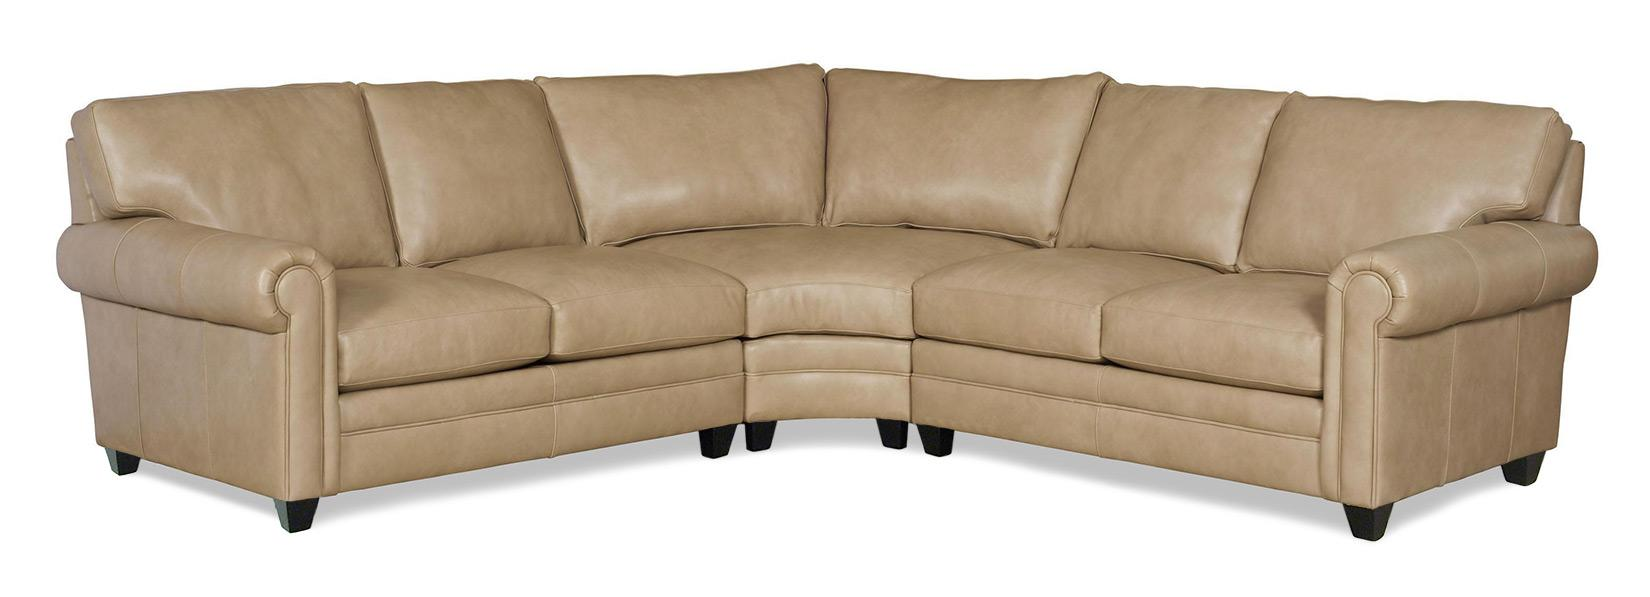 Bradington Young So You 3 Pc Sectional Sofa - Item Number: 172-57+58+68